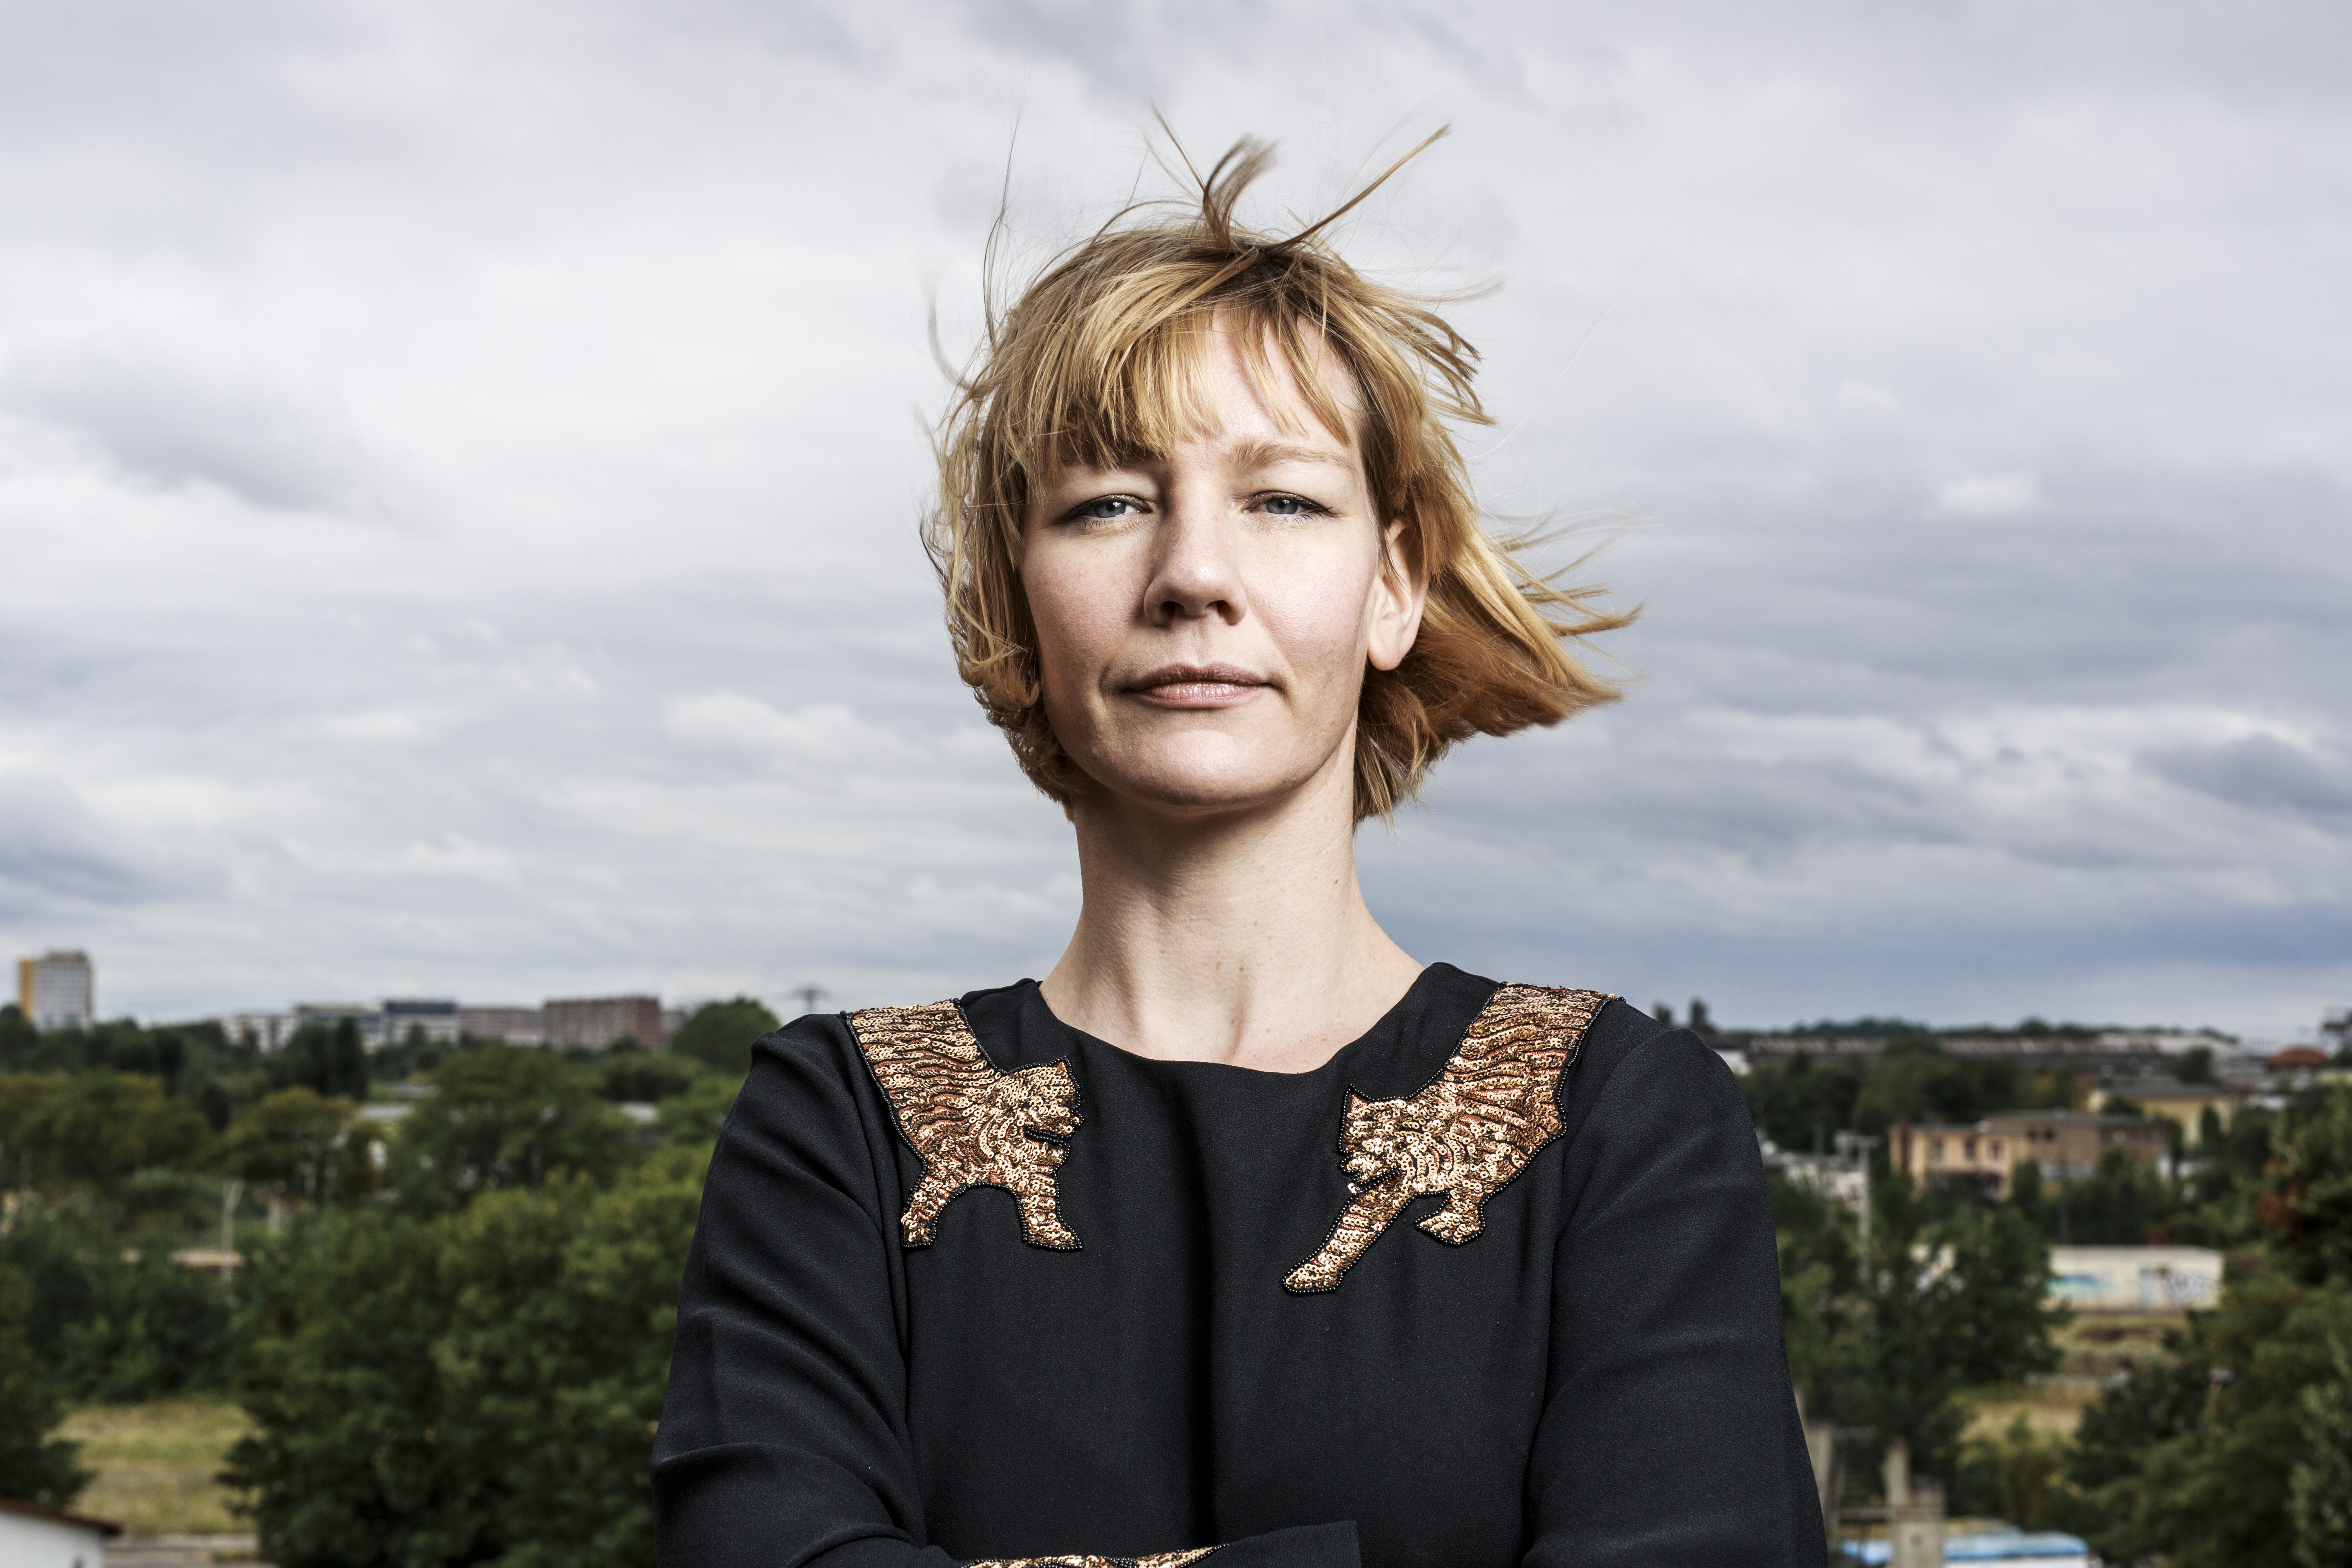 Sandra Hüller is standing in front of a park landscape with scattered houses.